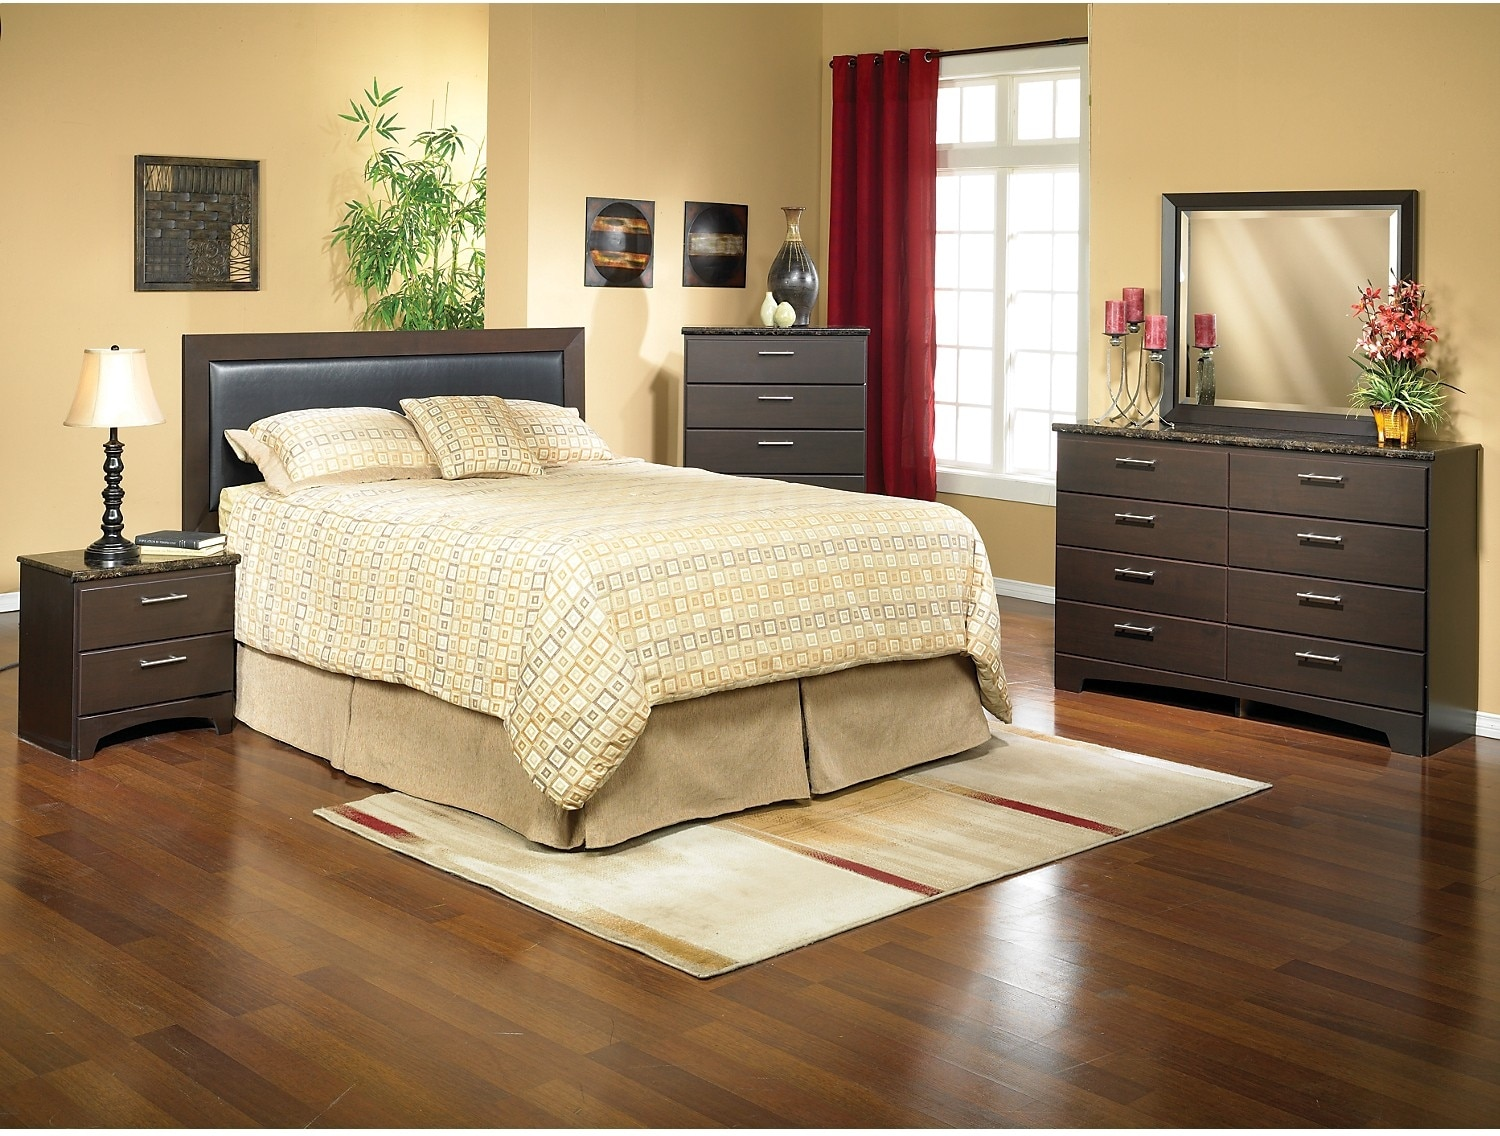 Bedroom Furniture - Oxford 3-Piece Queen Bedroom Package